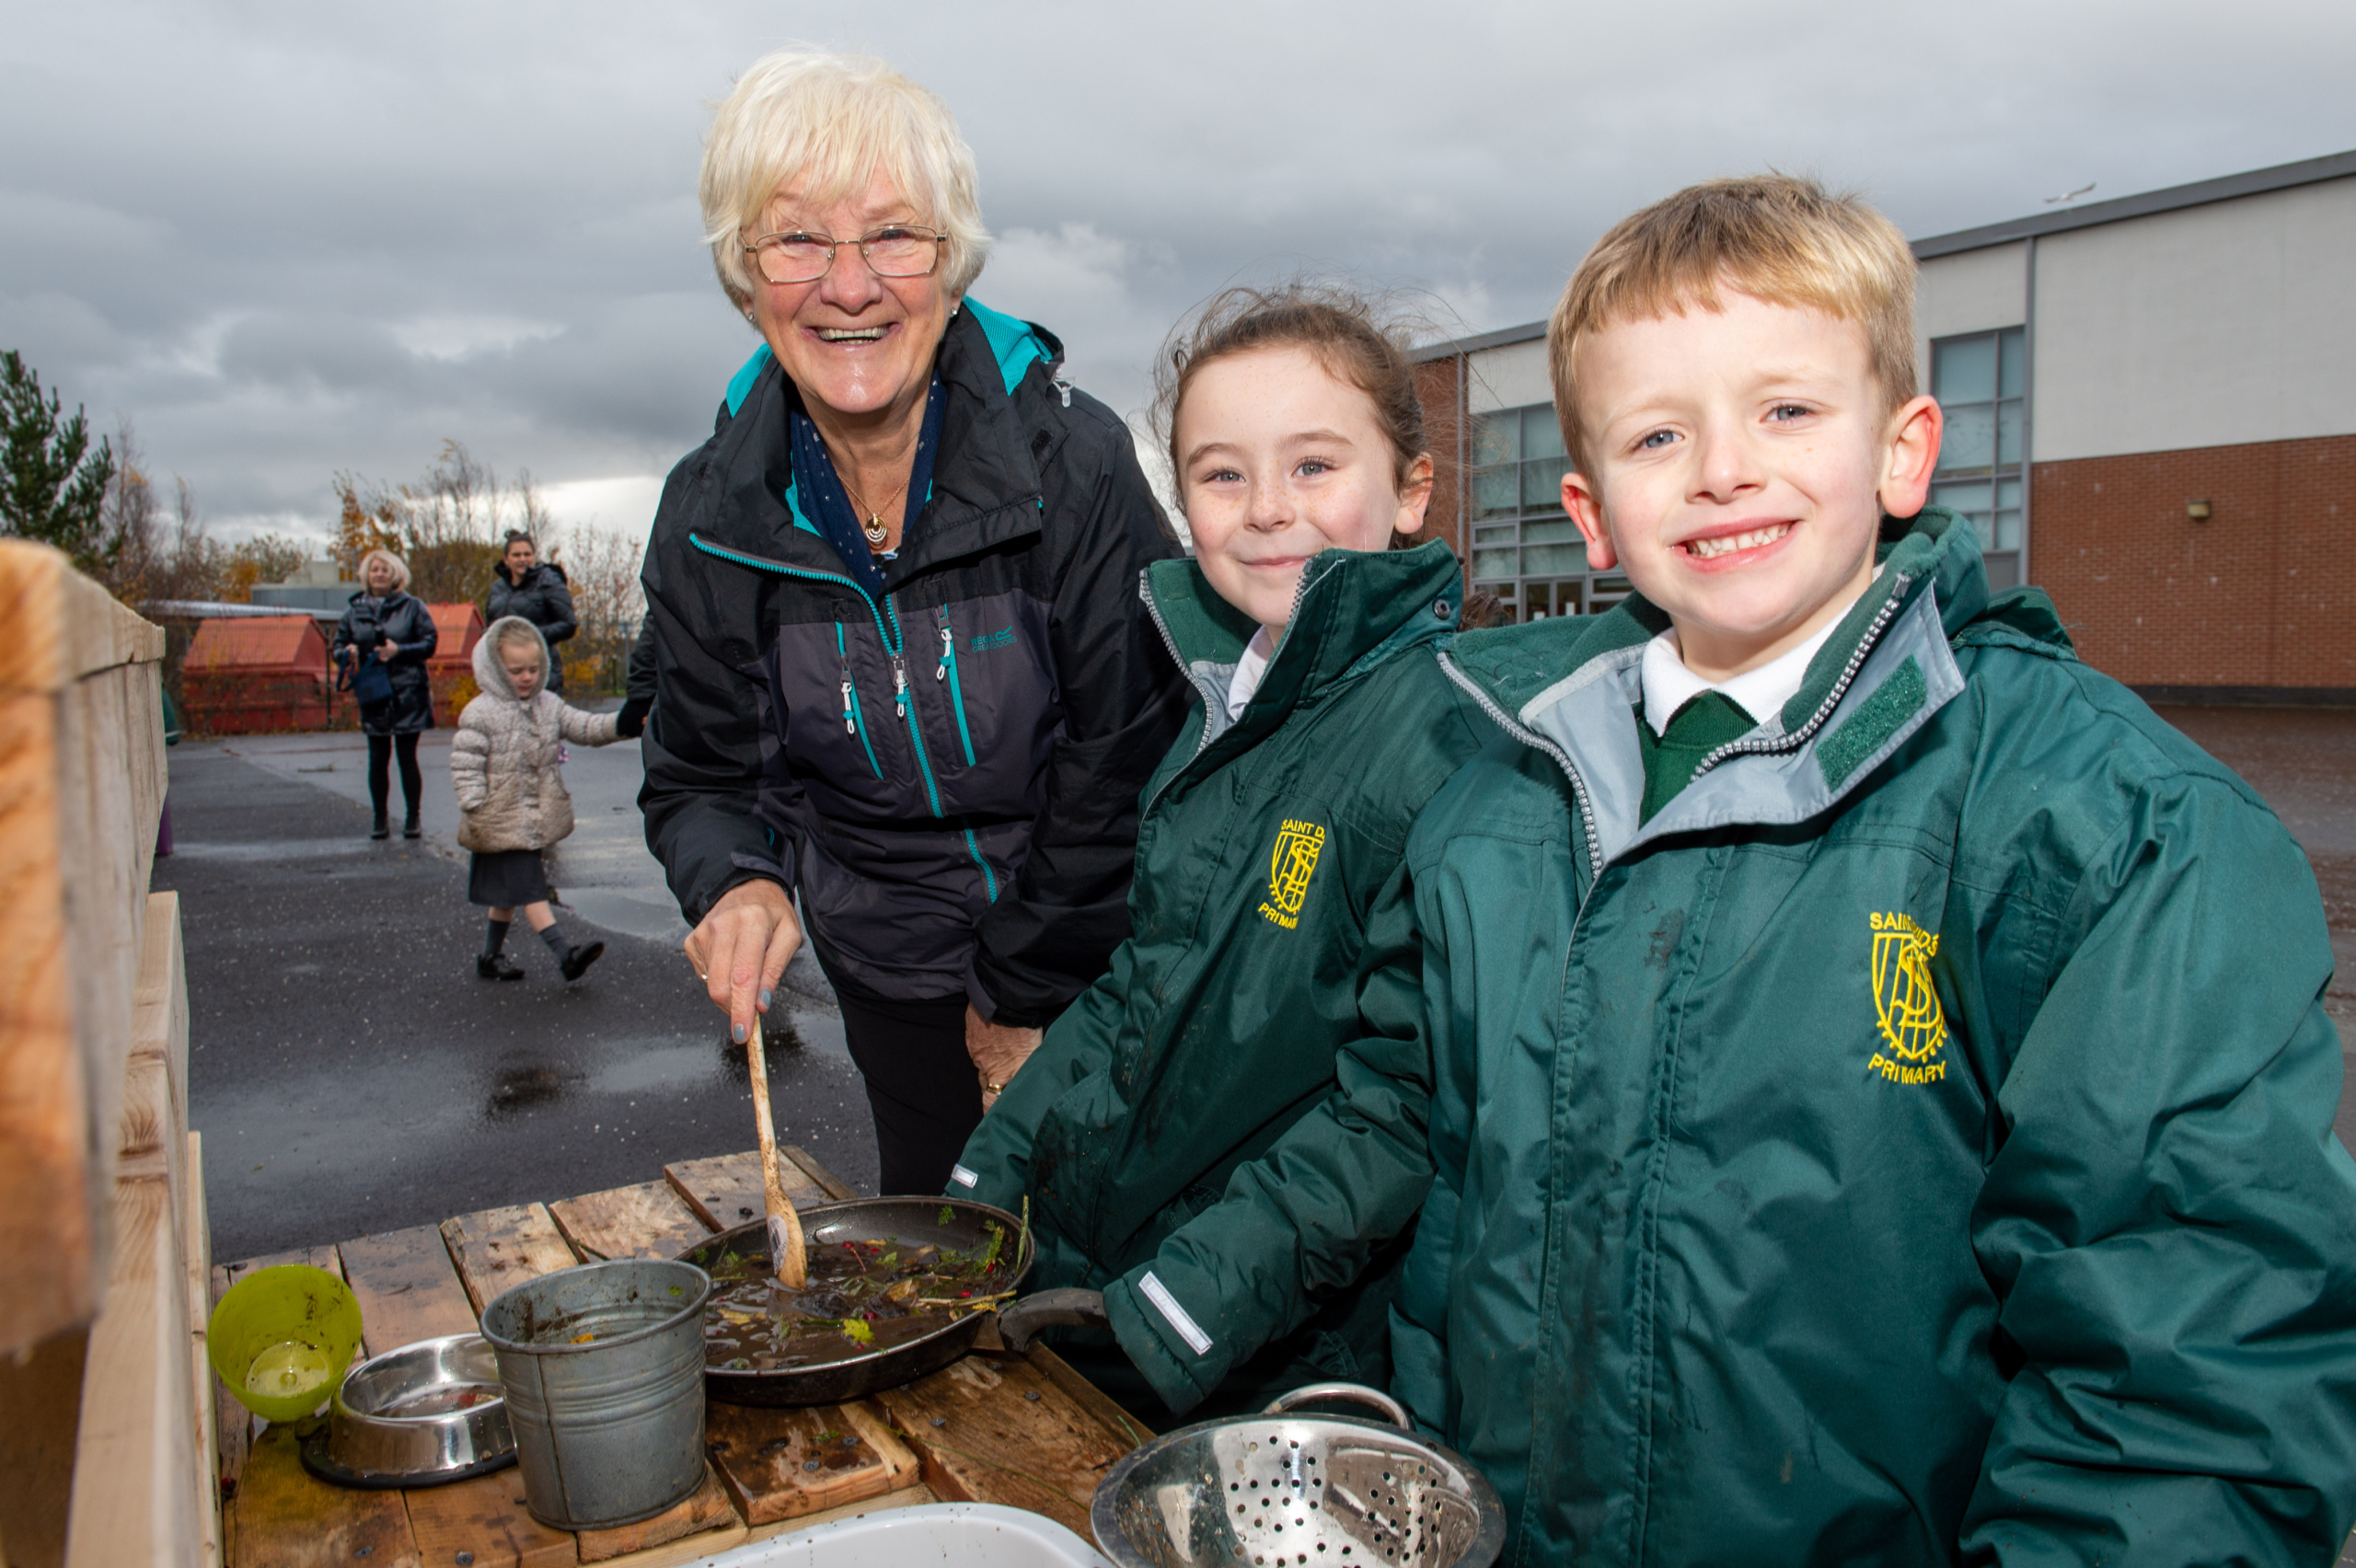 Cllr Cathy McEwan with St David's Primary pupils